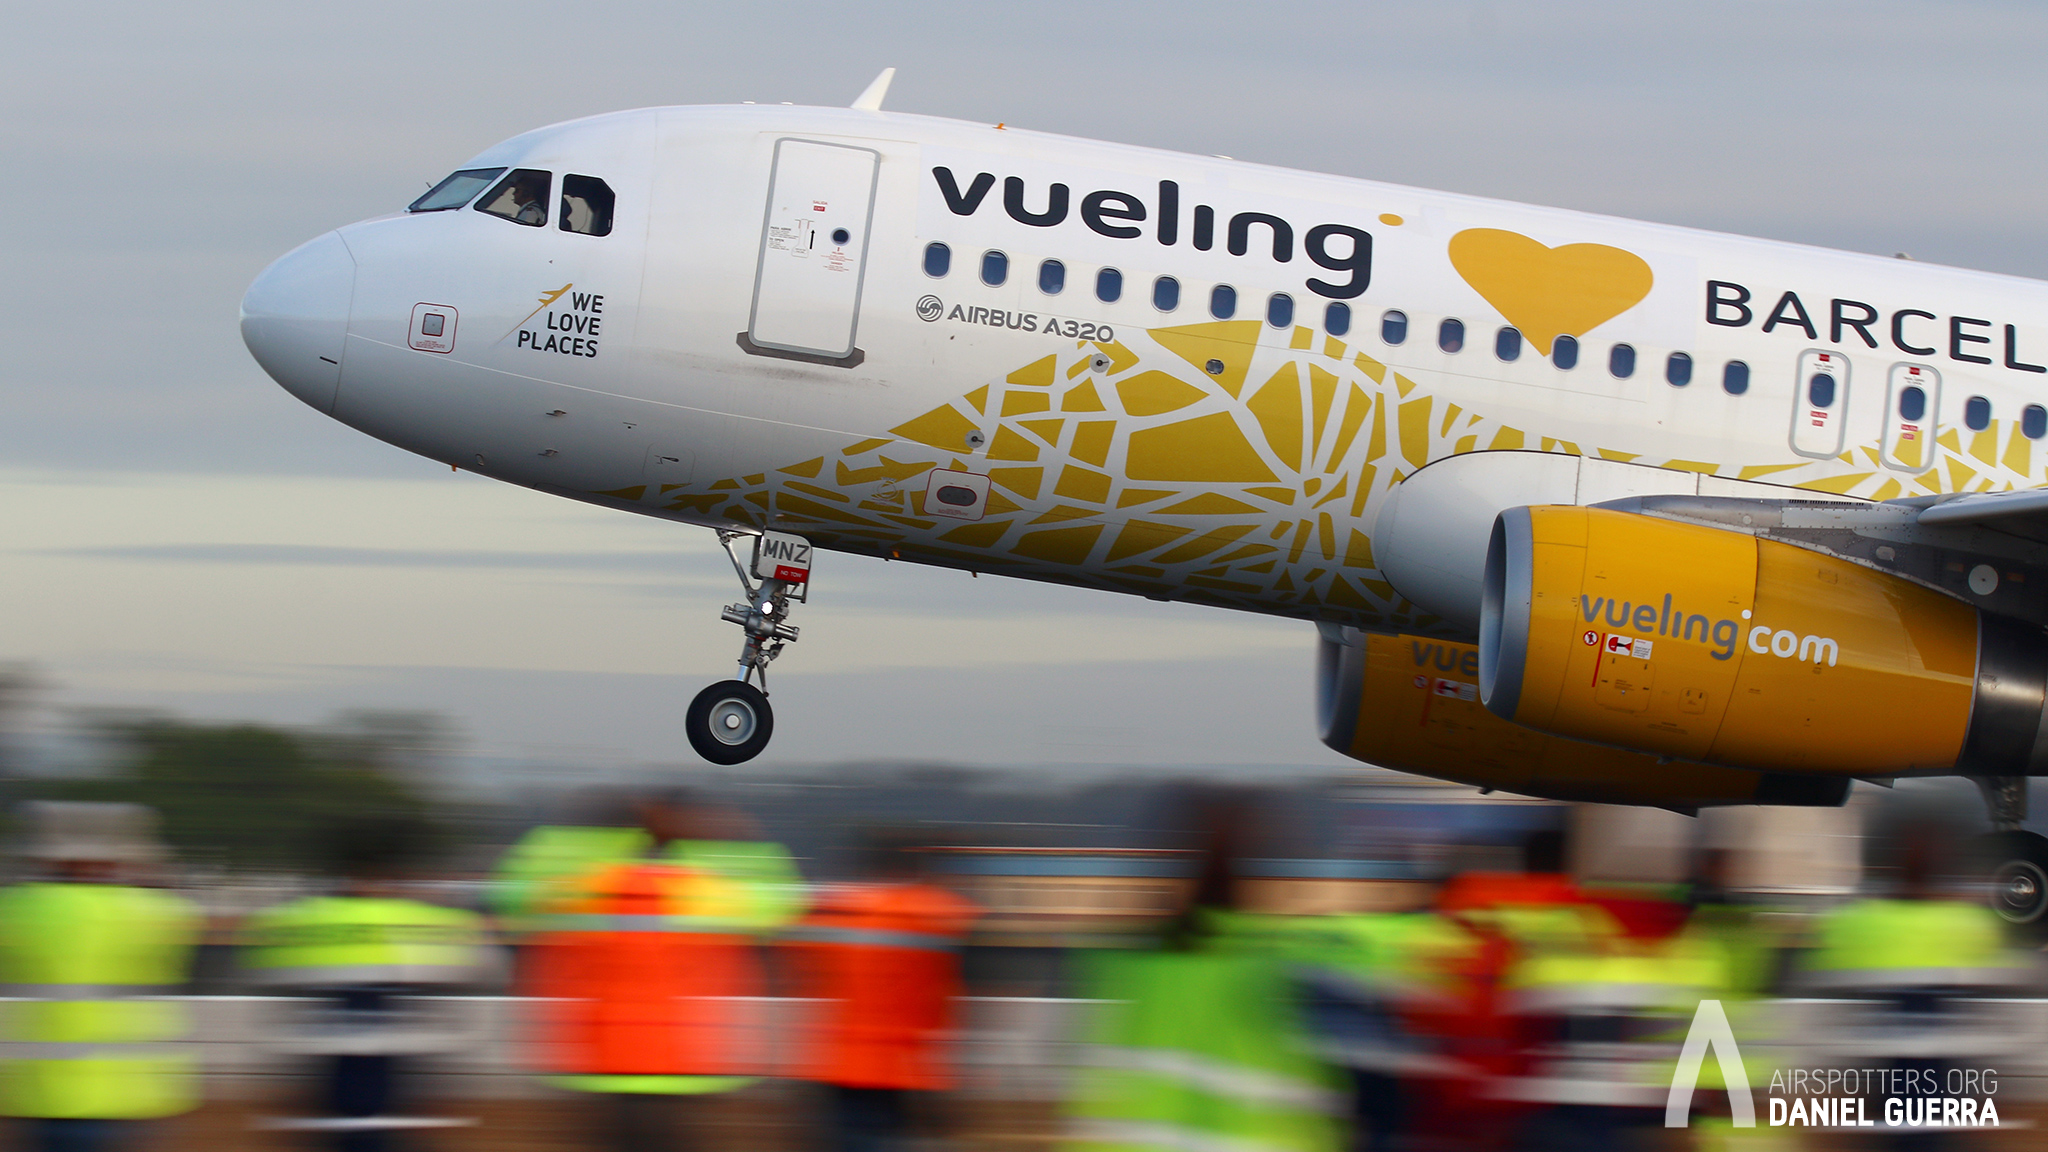 Spotting Day Sevilla. A320 Vueling We love places